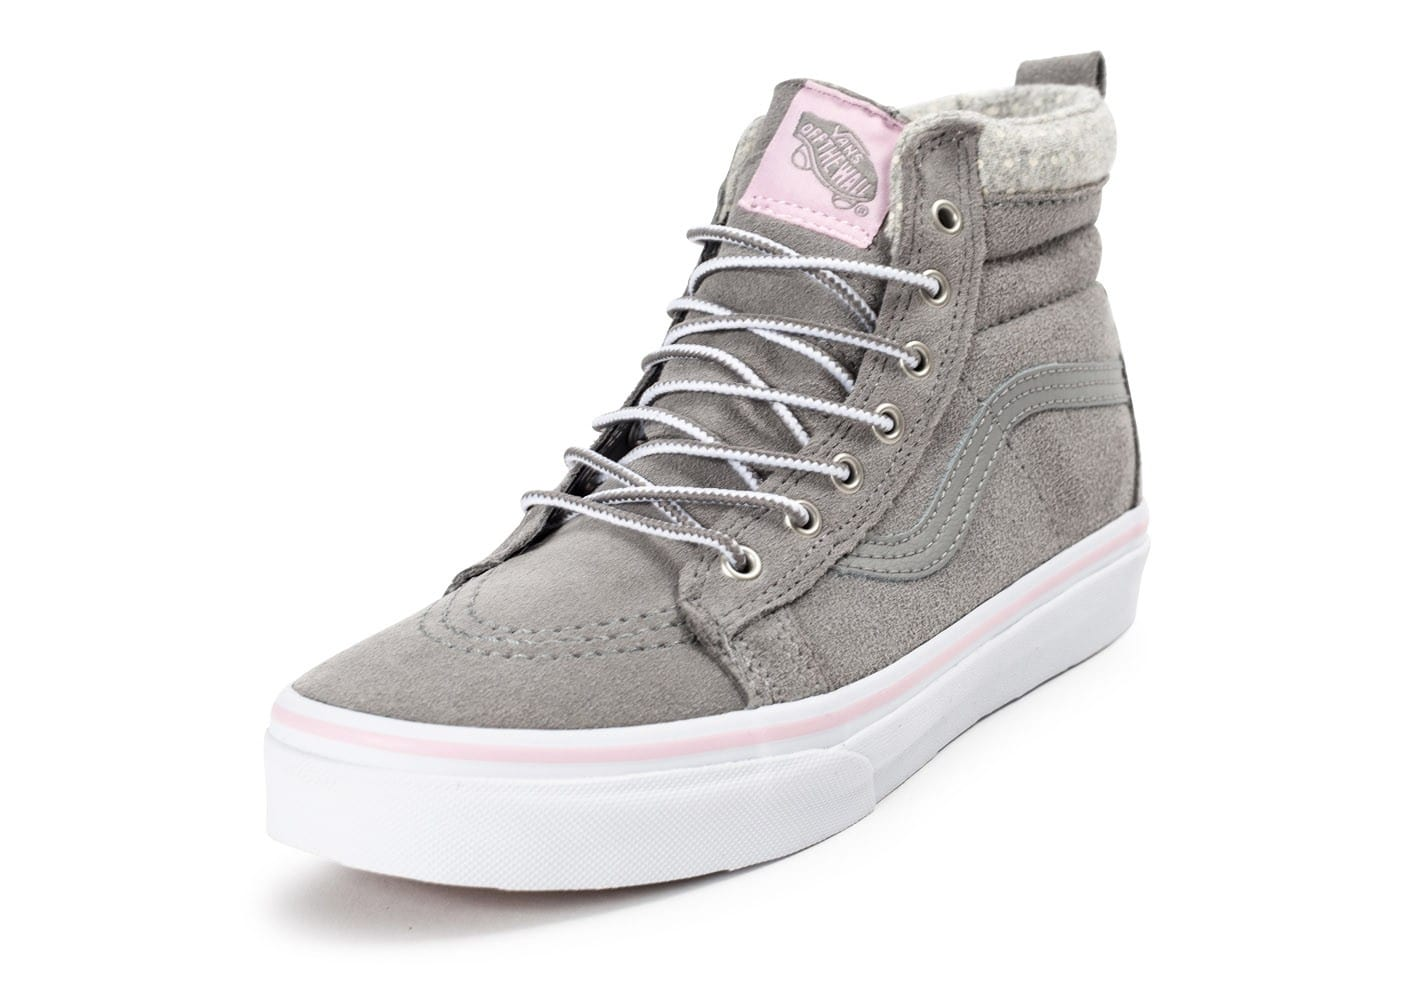 0d2fb536c71a Achetez vans sk8 hi junior   51% de r duction!